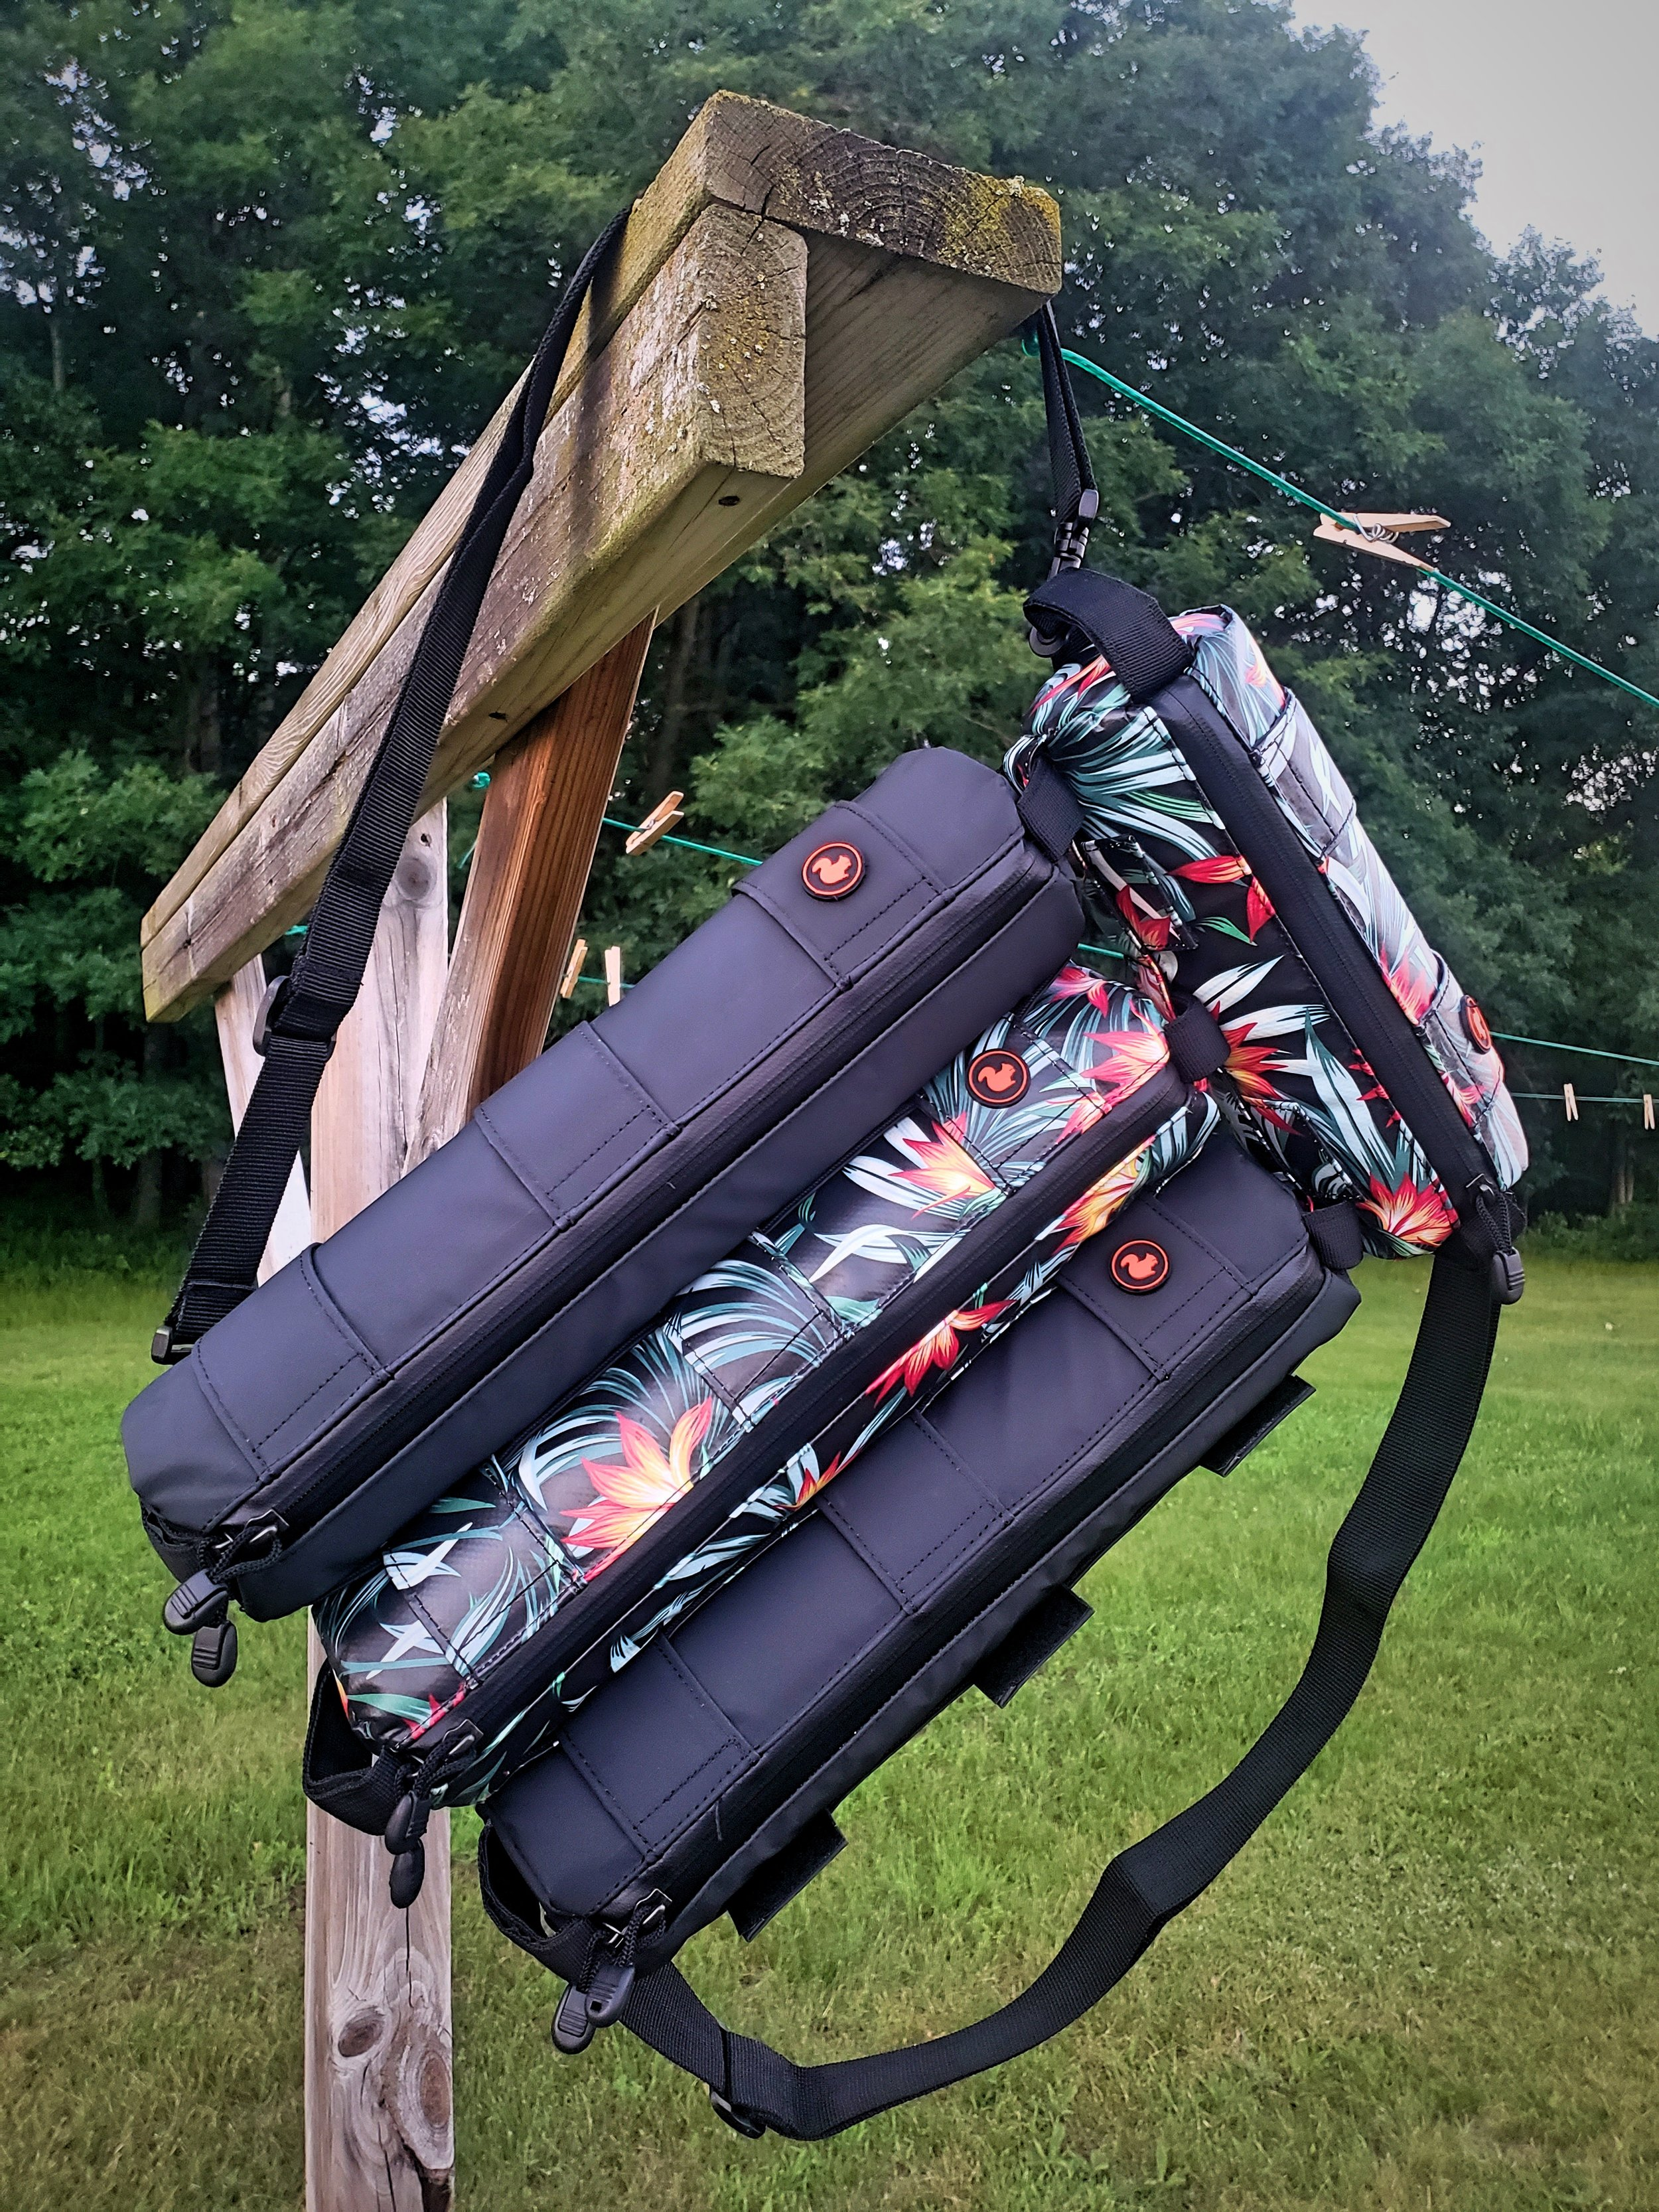 We really like the modular design of the STASHERS bike bags, we can connect them into a backpack to take our valuables inside places with us.